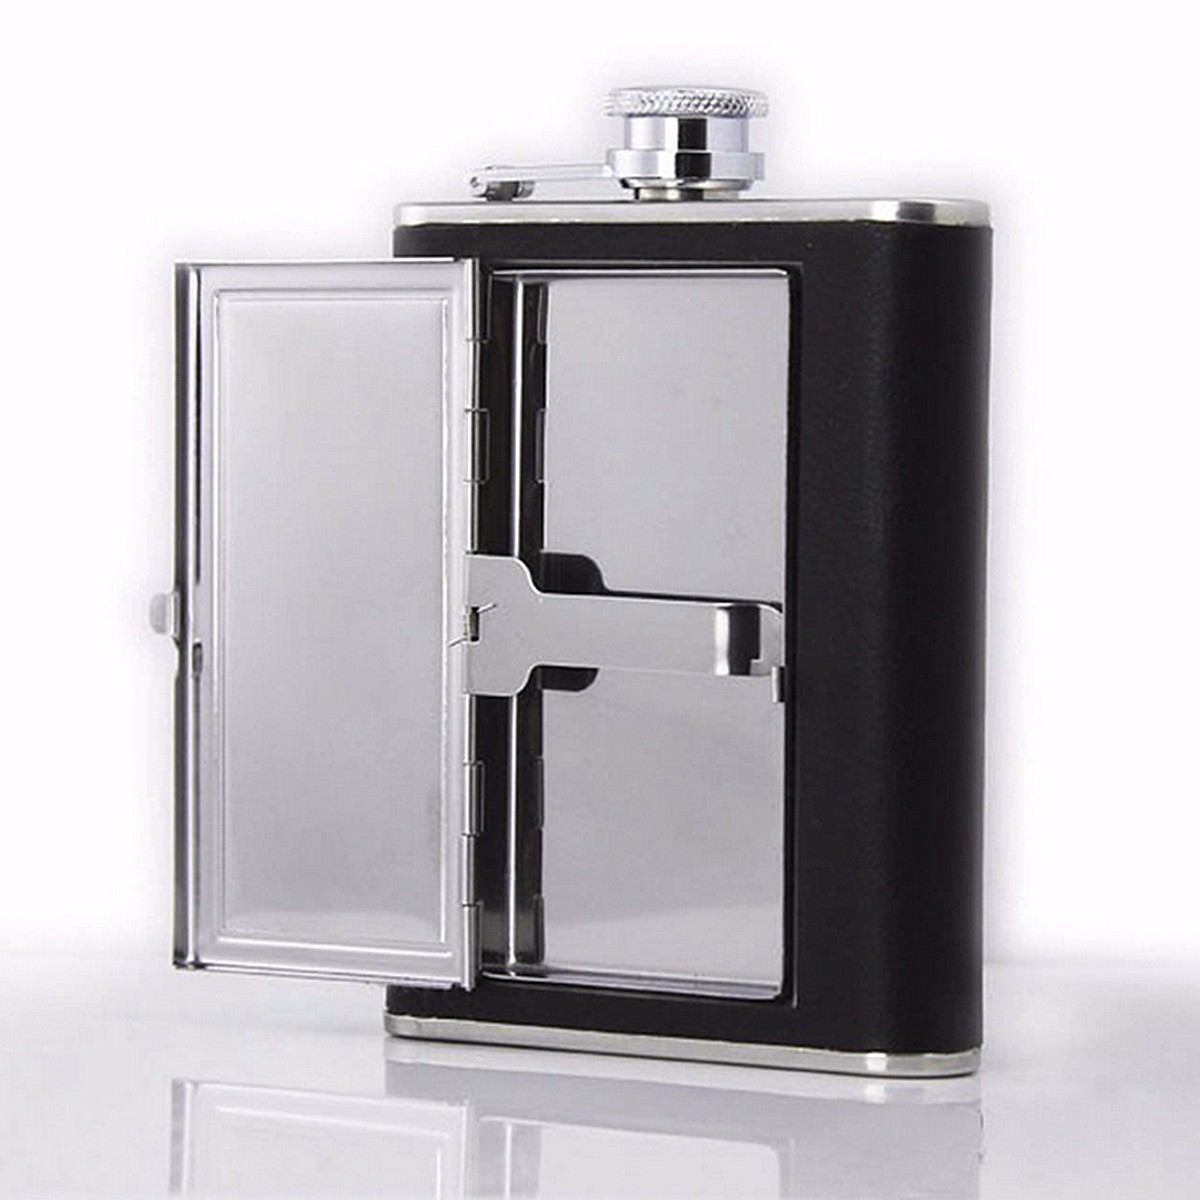 Dual Purpose Stainless Steel Hip Flask